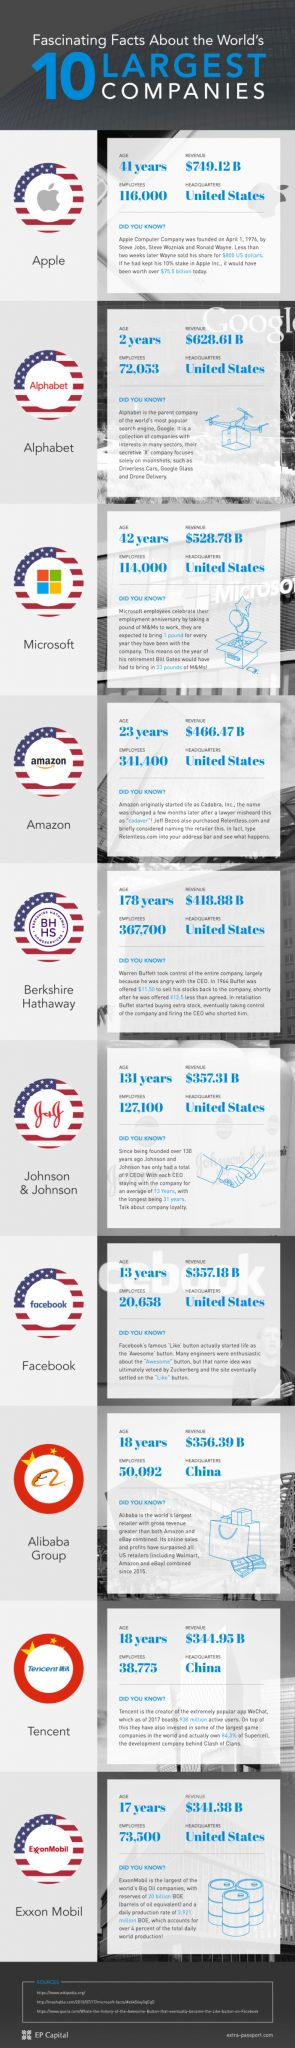 INFOGRAPHIC: Fascinating Facts About The World's 10 Largest Companies